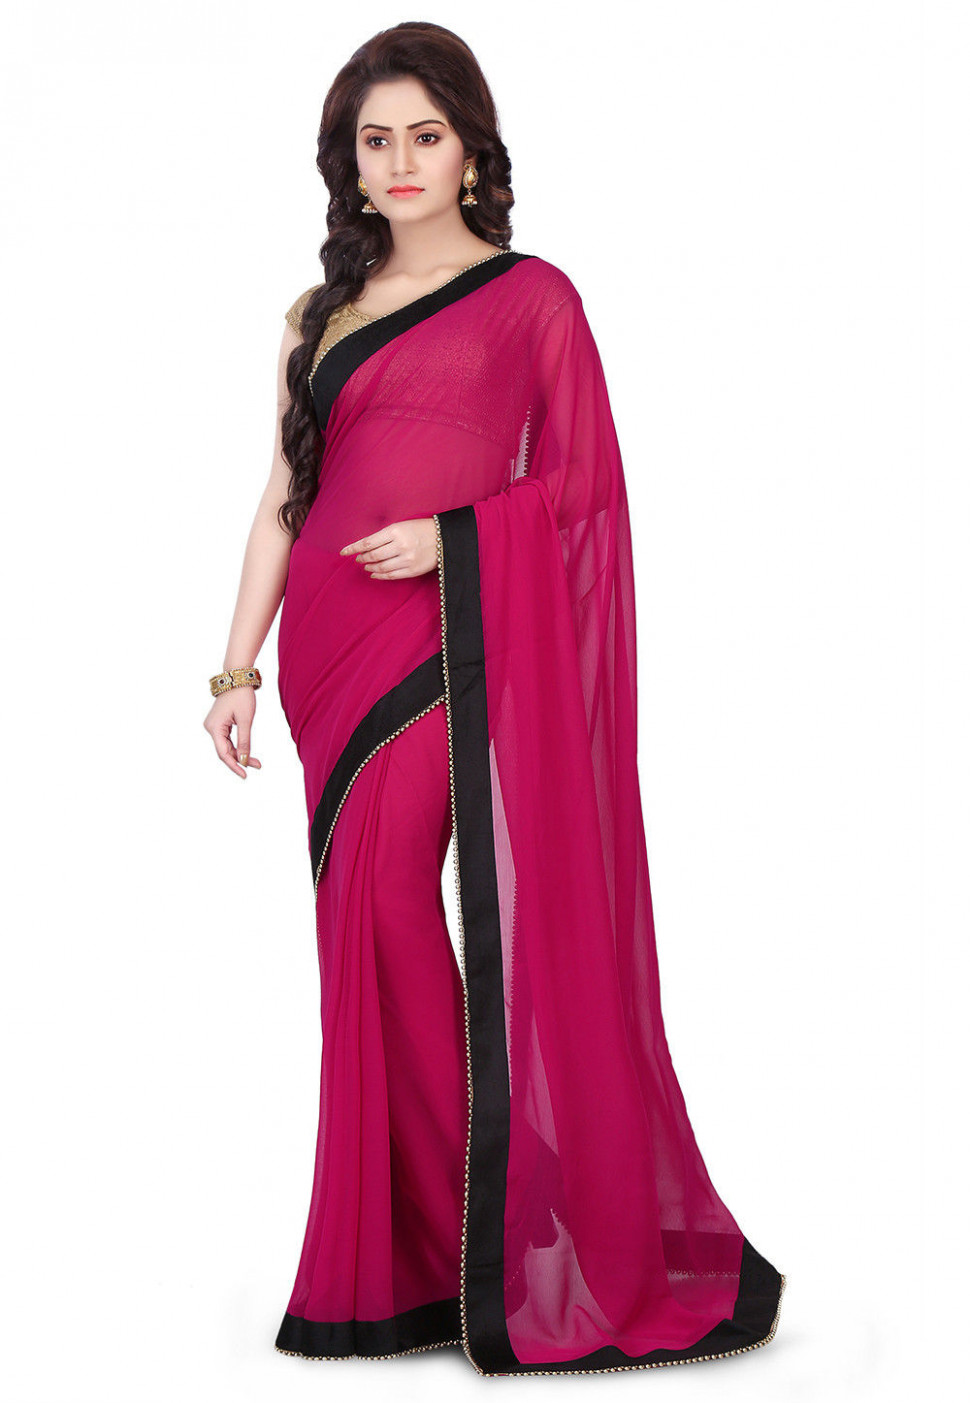 Plain Chiffon Saree in Magenta : SVX778